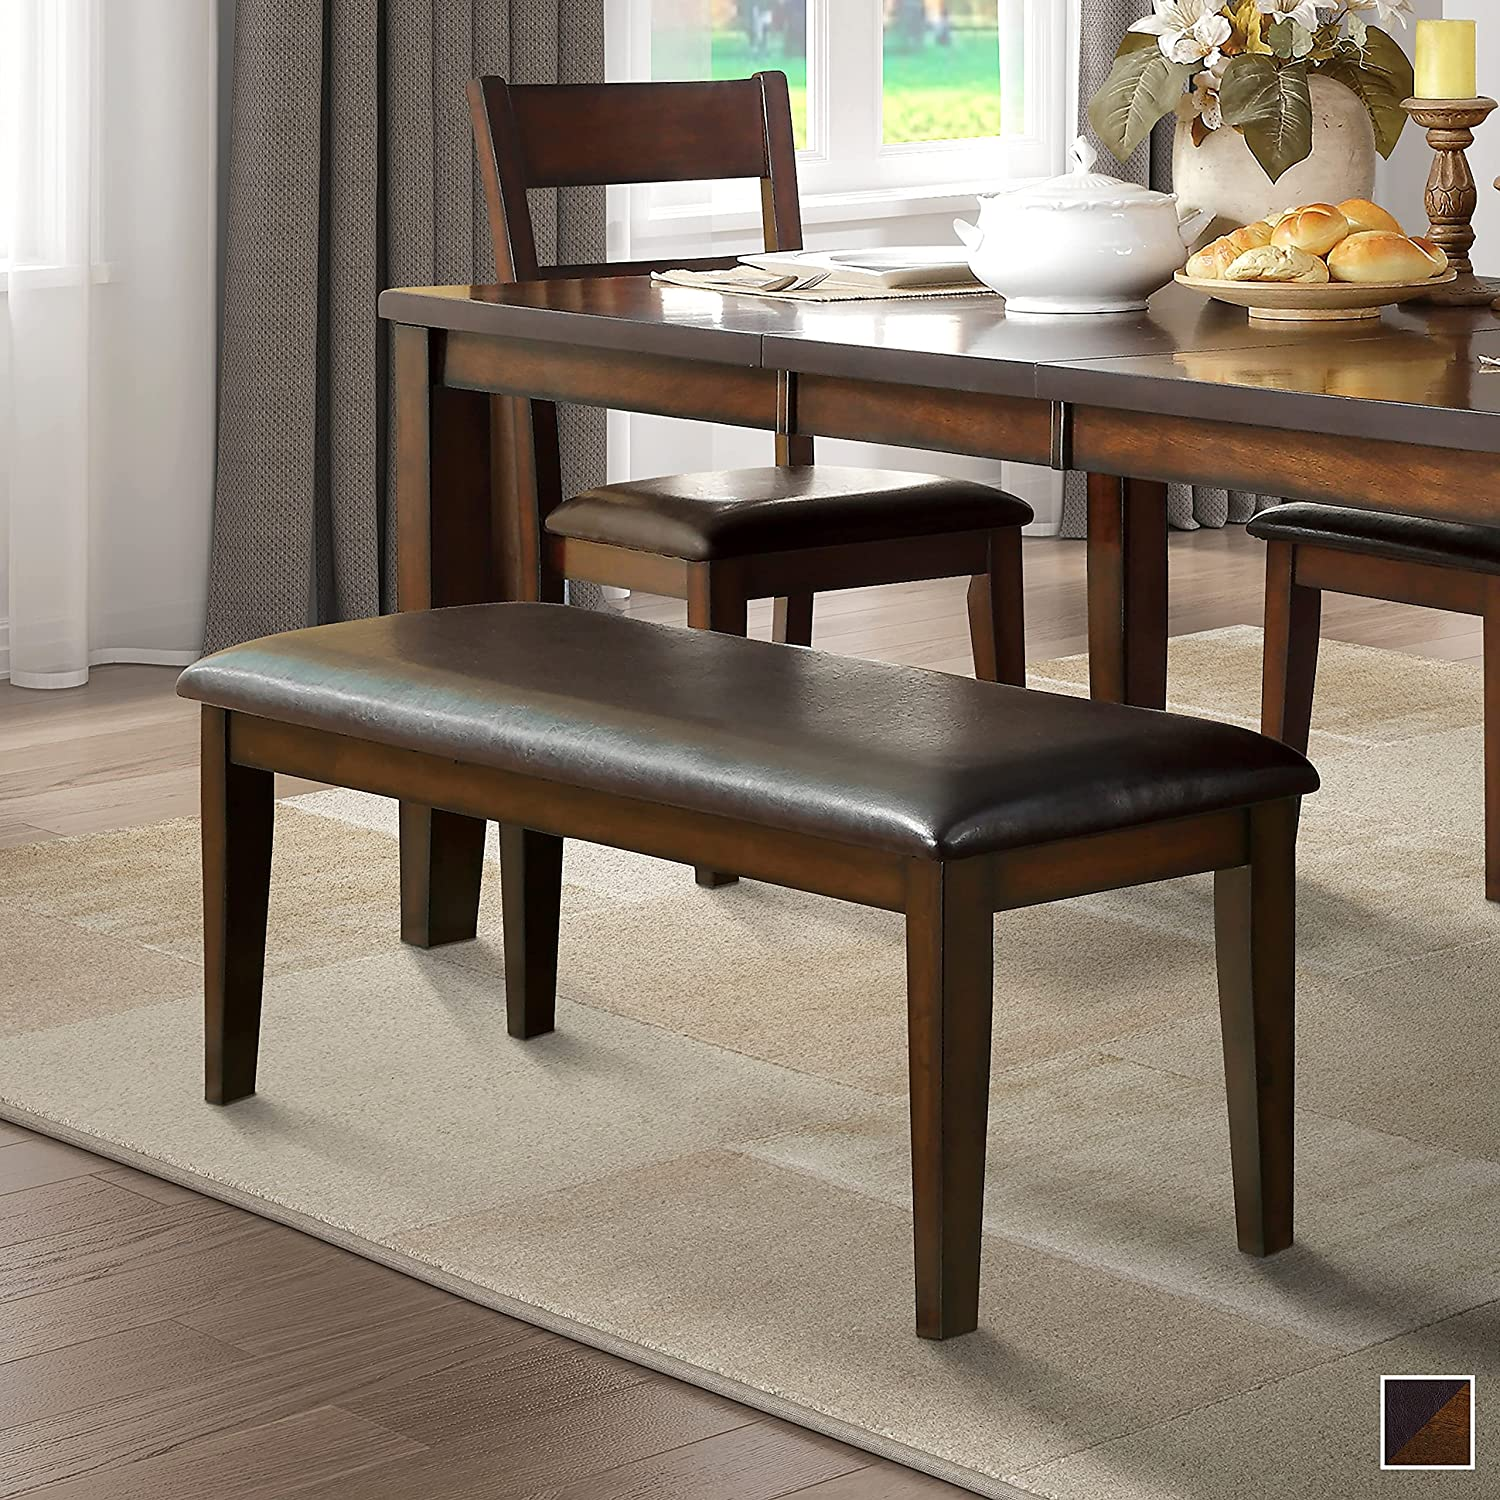 Unknown1 Dining Bench Brown Upholstered Contemporary Under blast sales Cher discount Modern